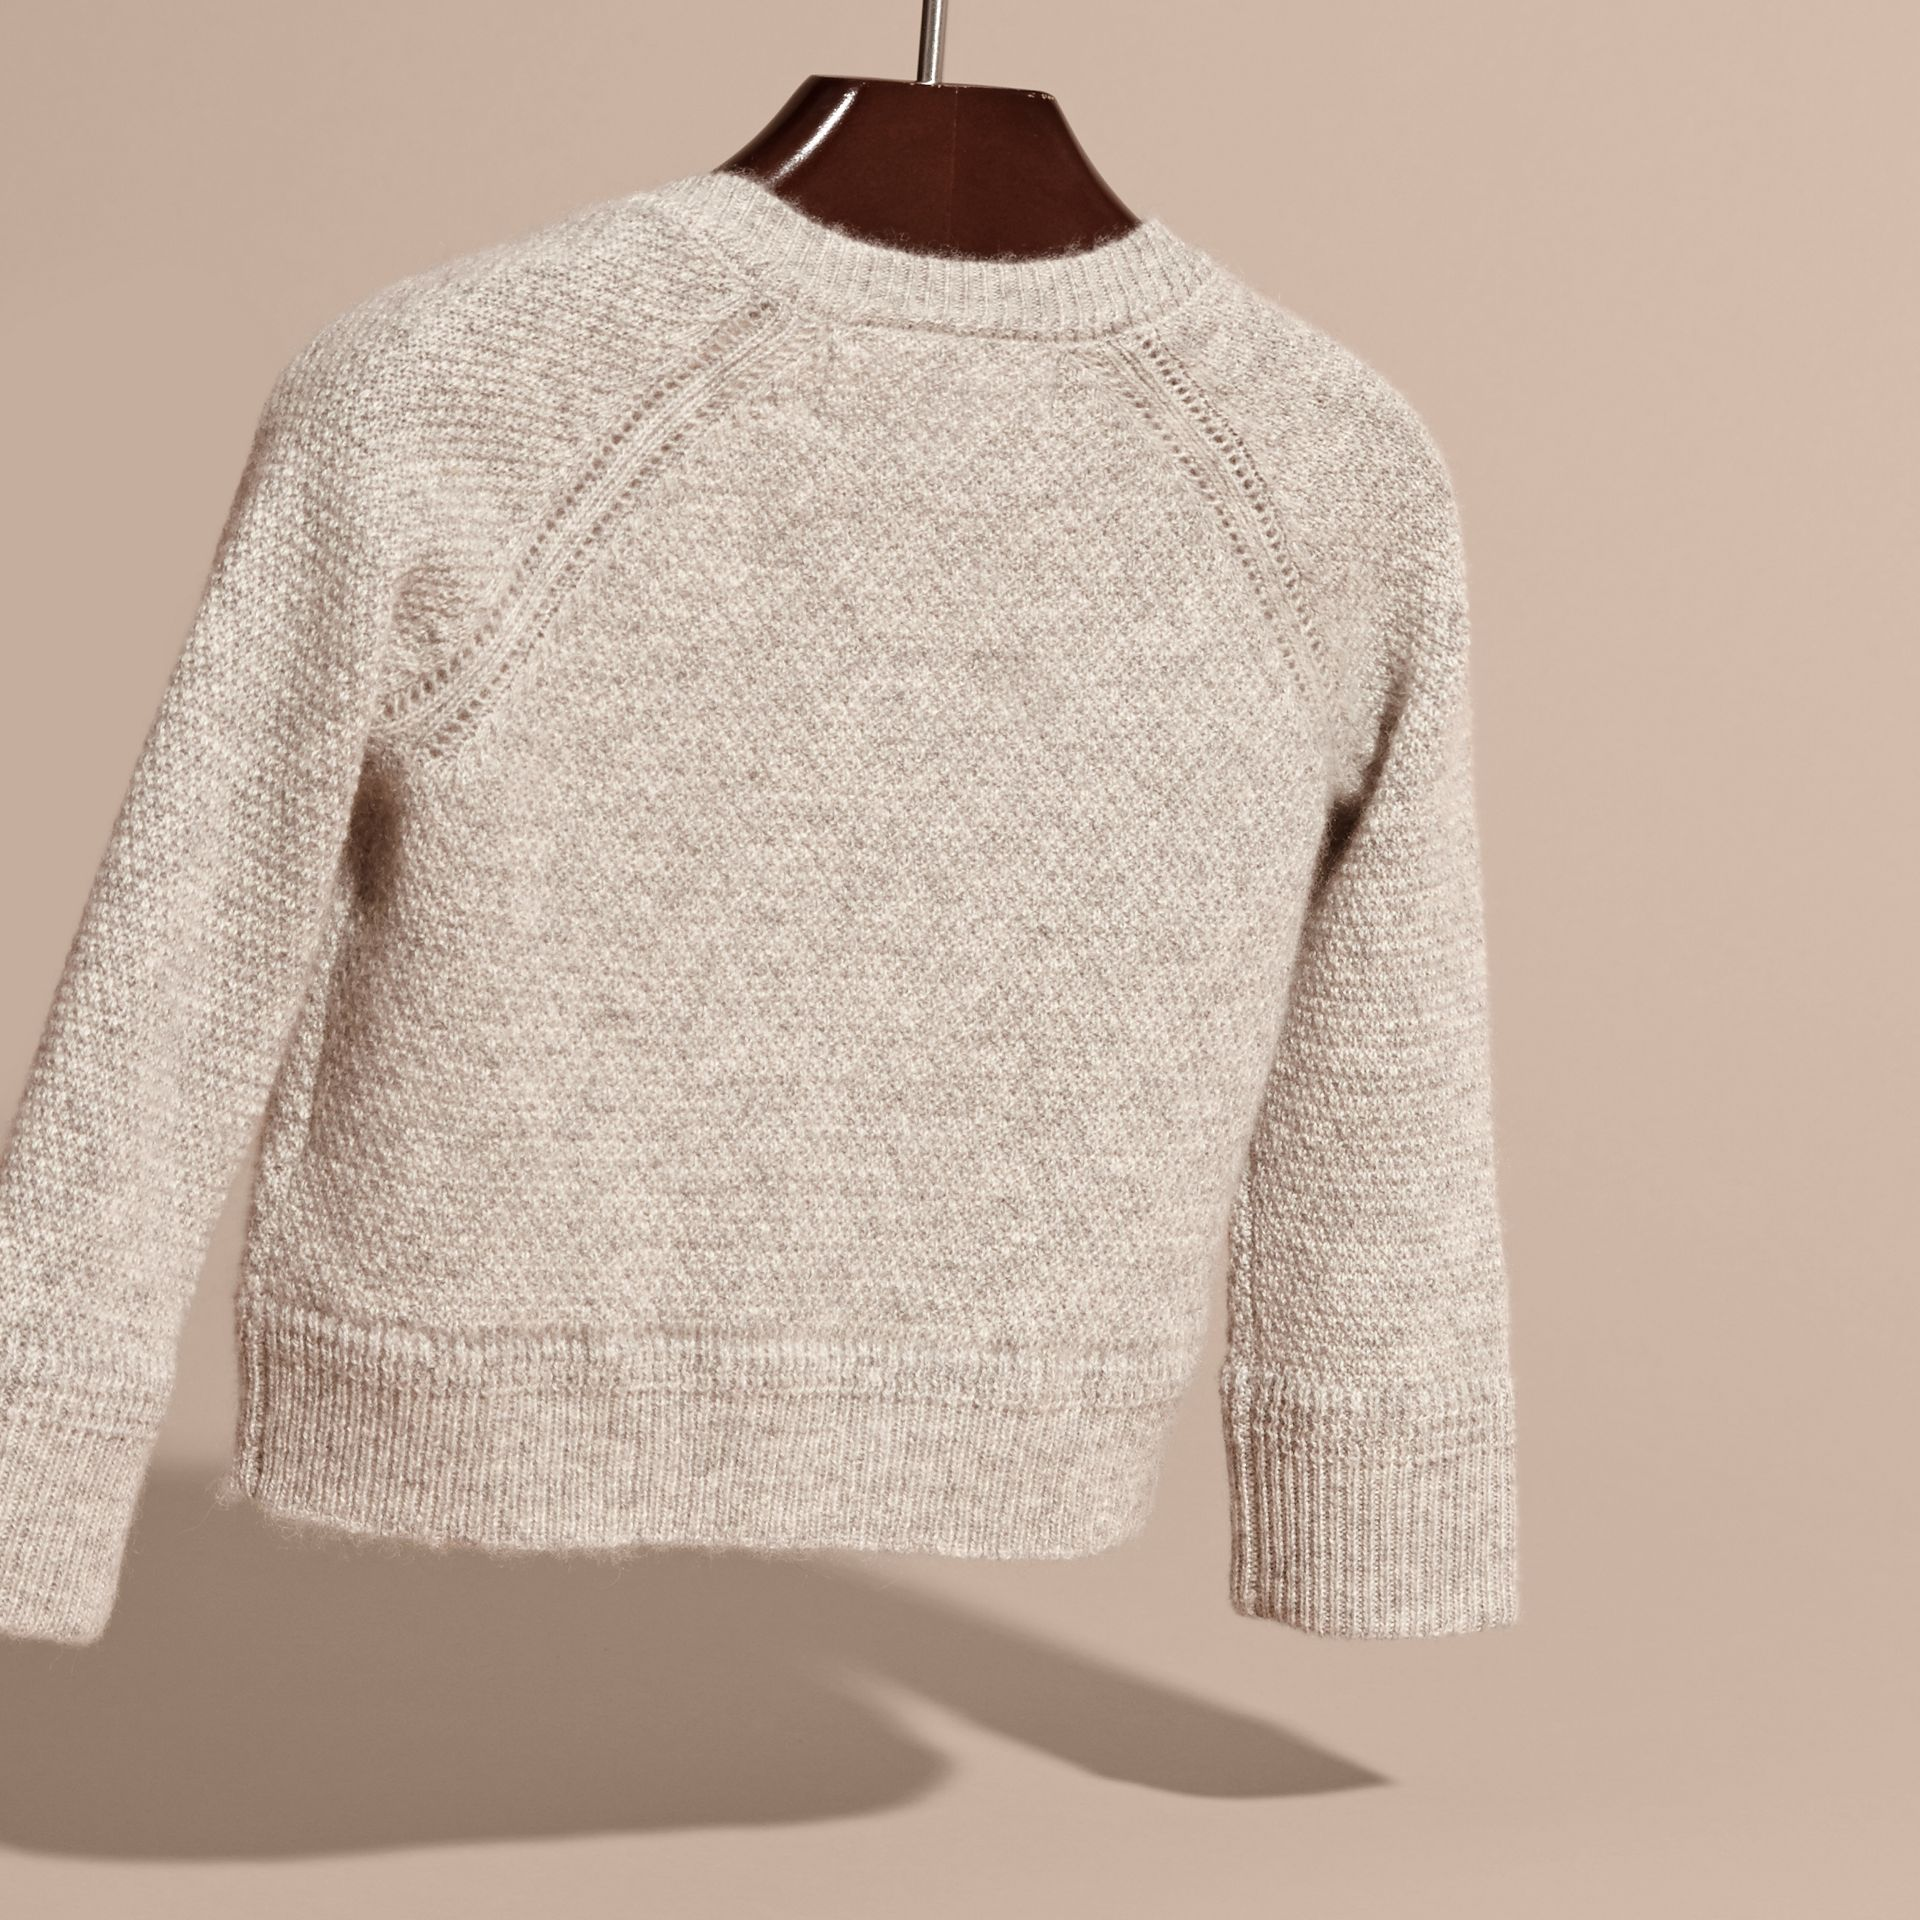 Textured Knit Cashmere Cardigan in Light Grey Melange | Burberry - gallery image 4